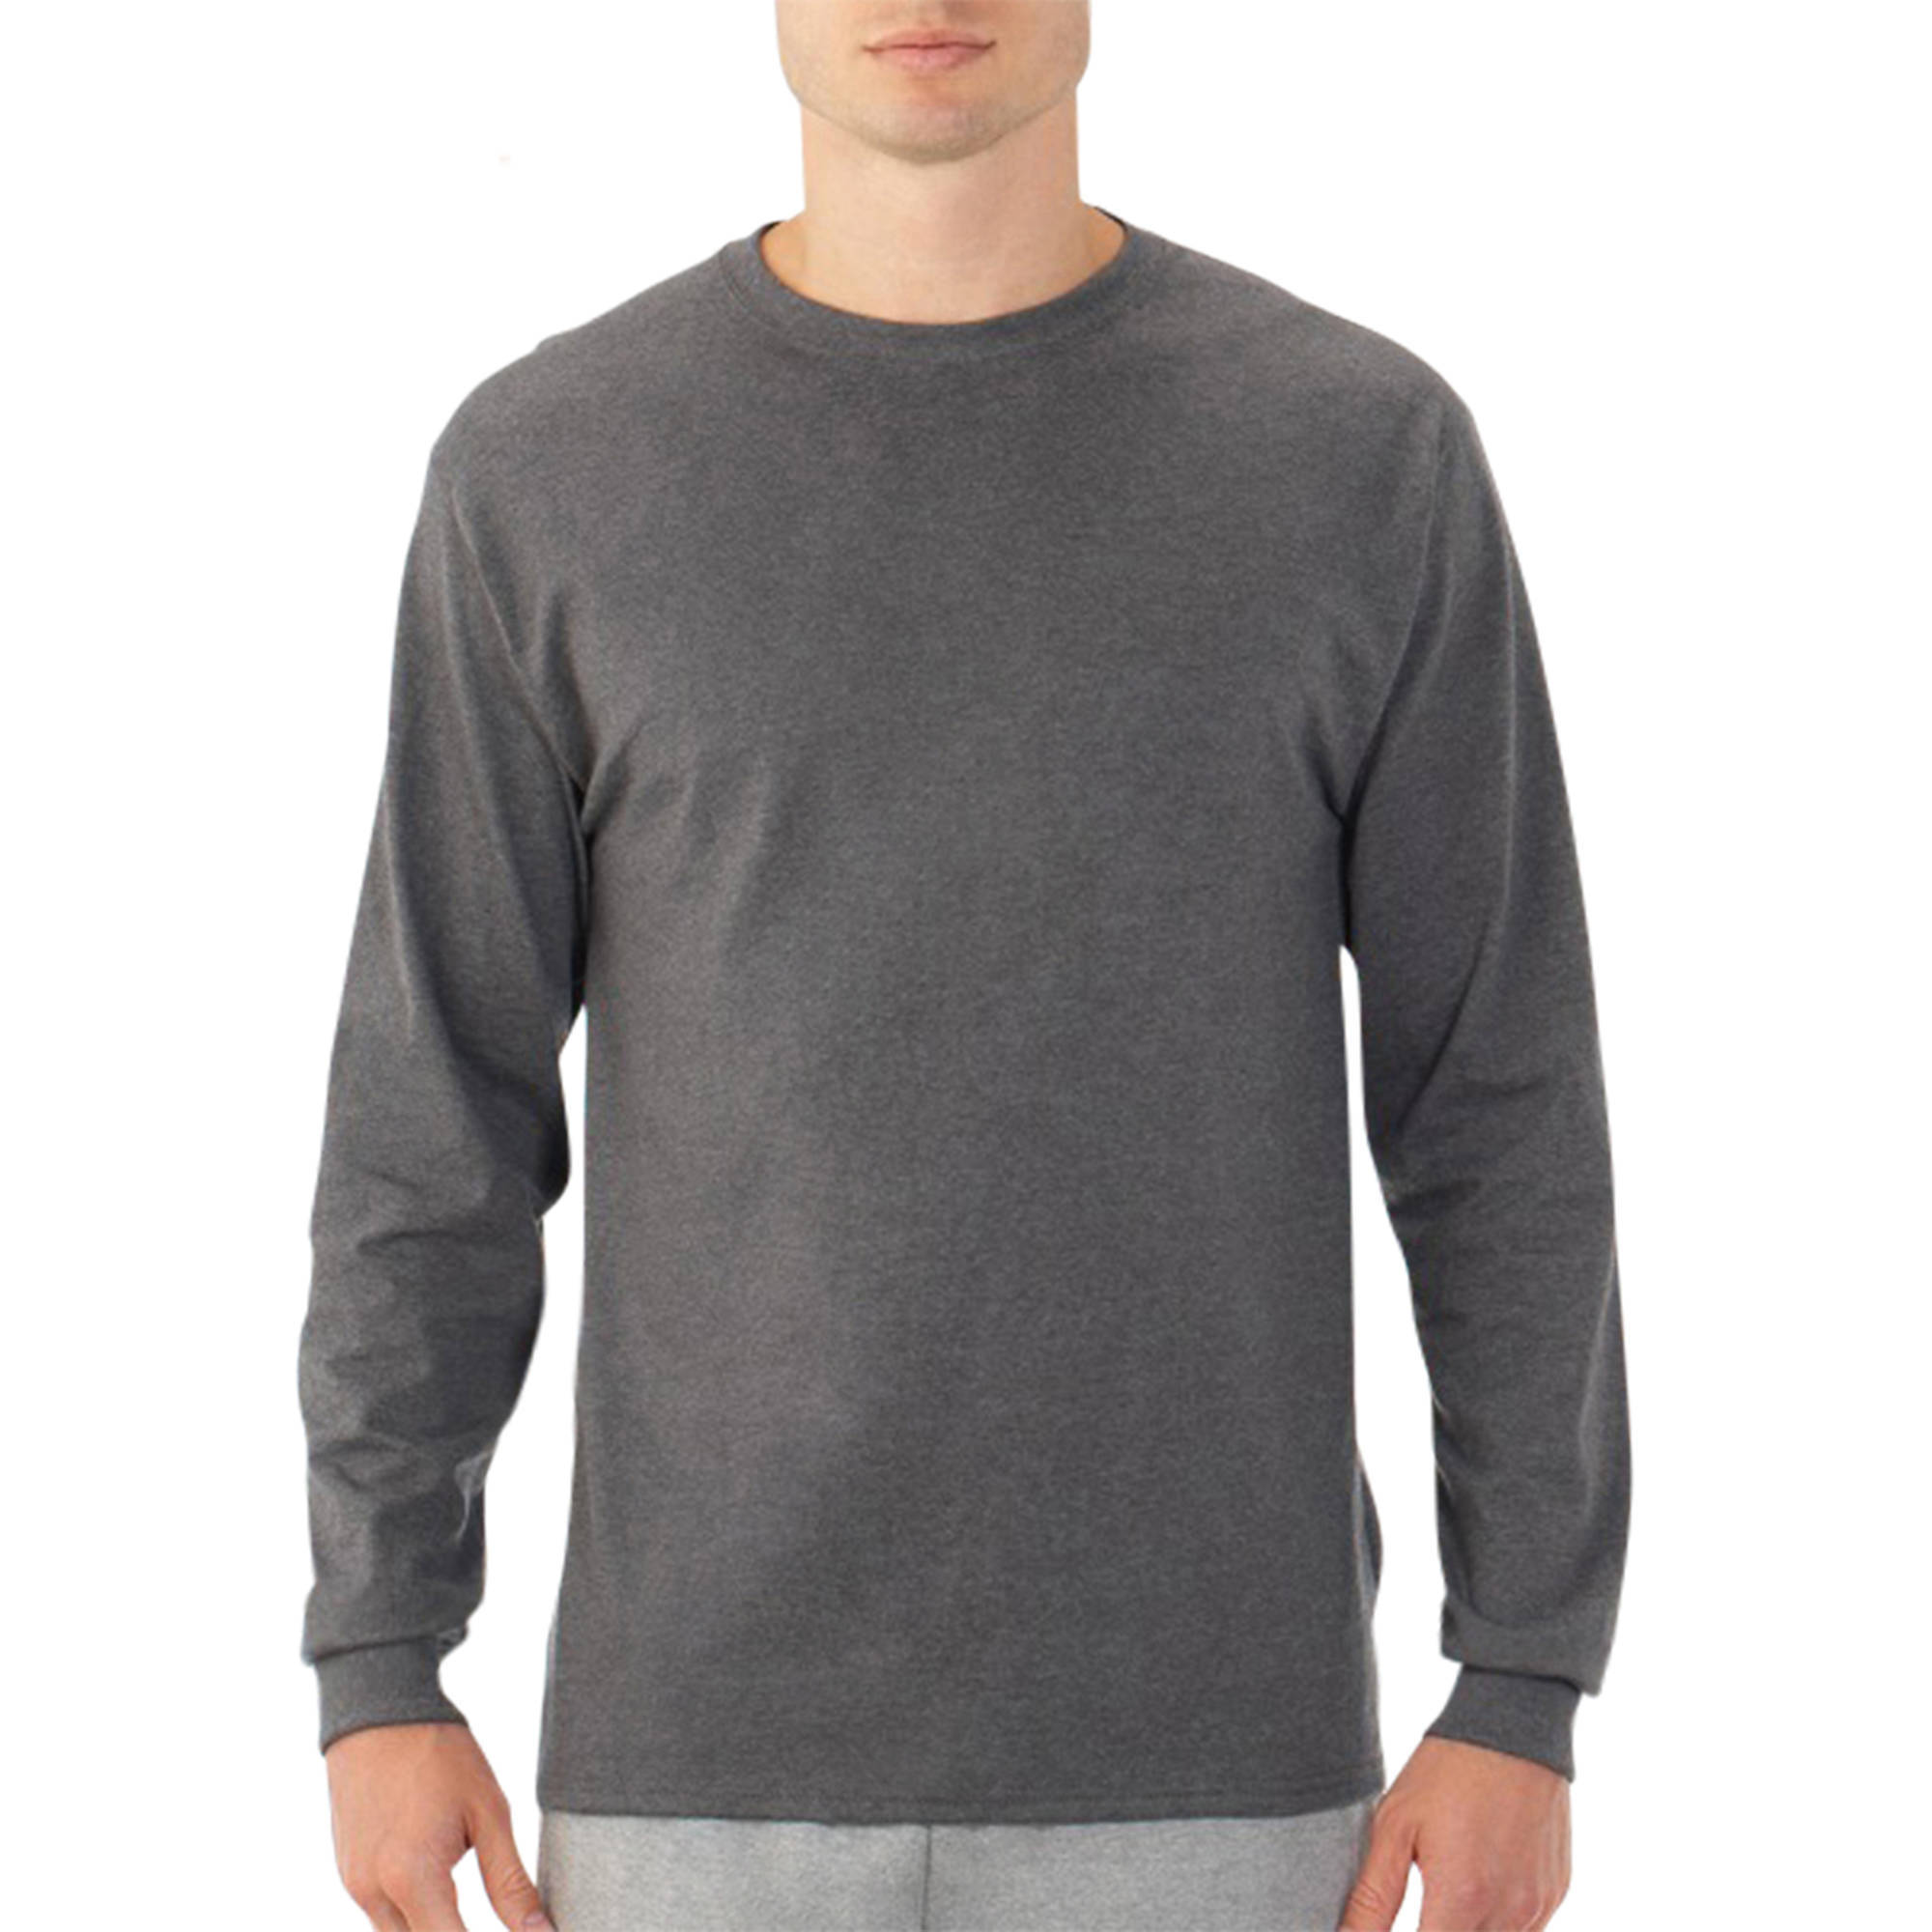 Fruit of the Loom Big Men's Long Sleeve Crew Tee